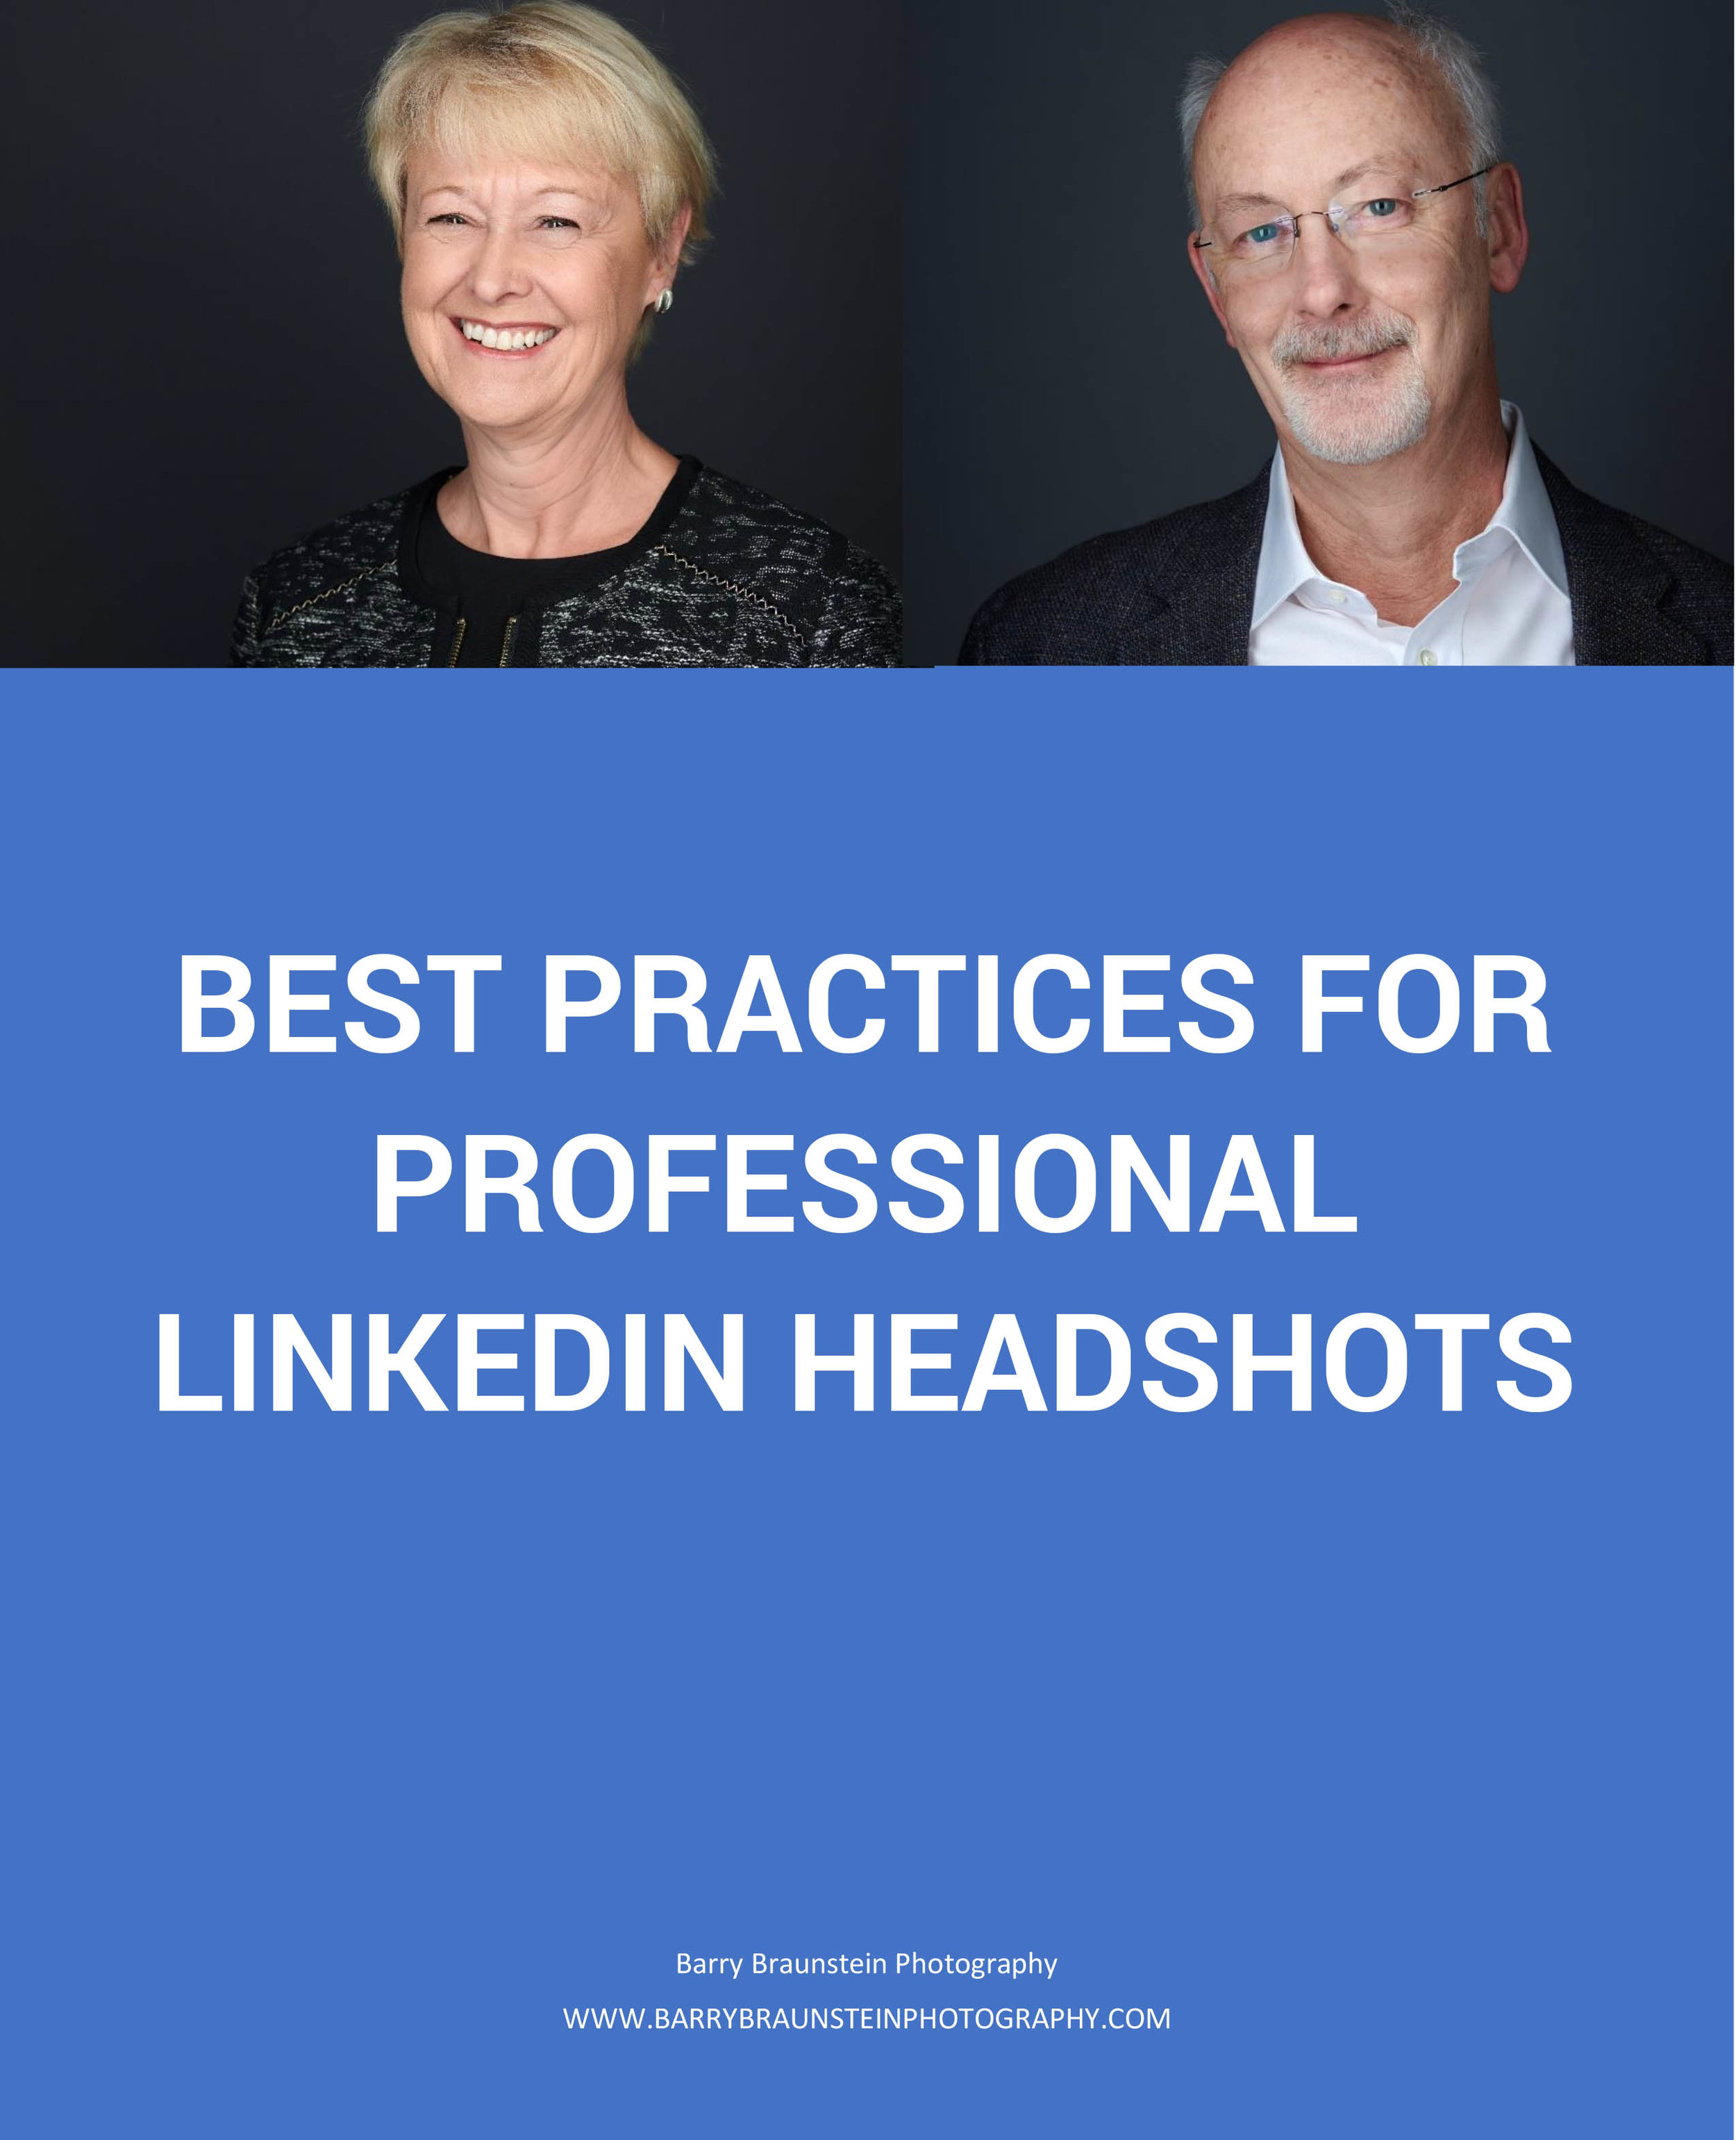 Best Practices for Professional LinkedIn Headshots